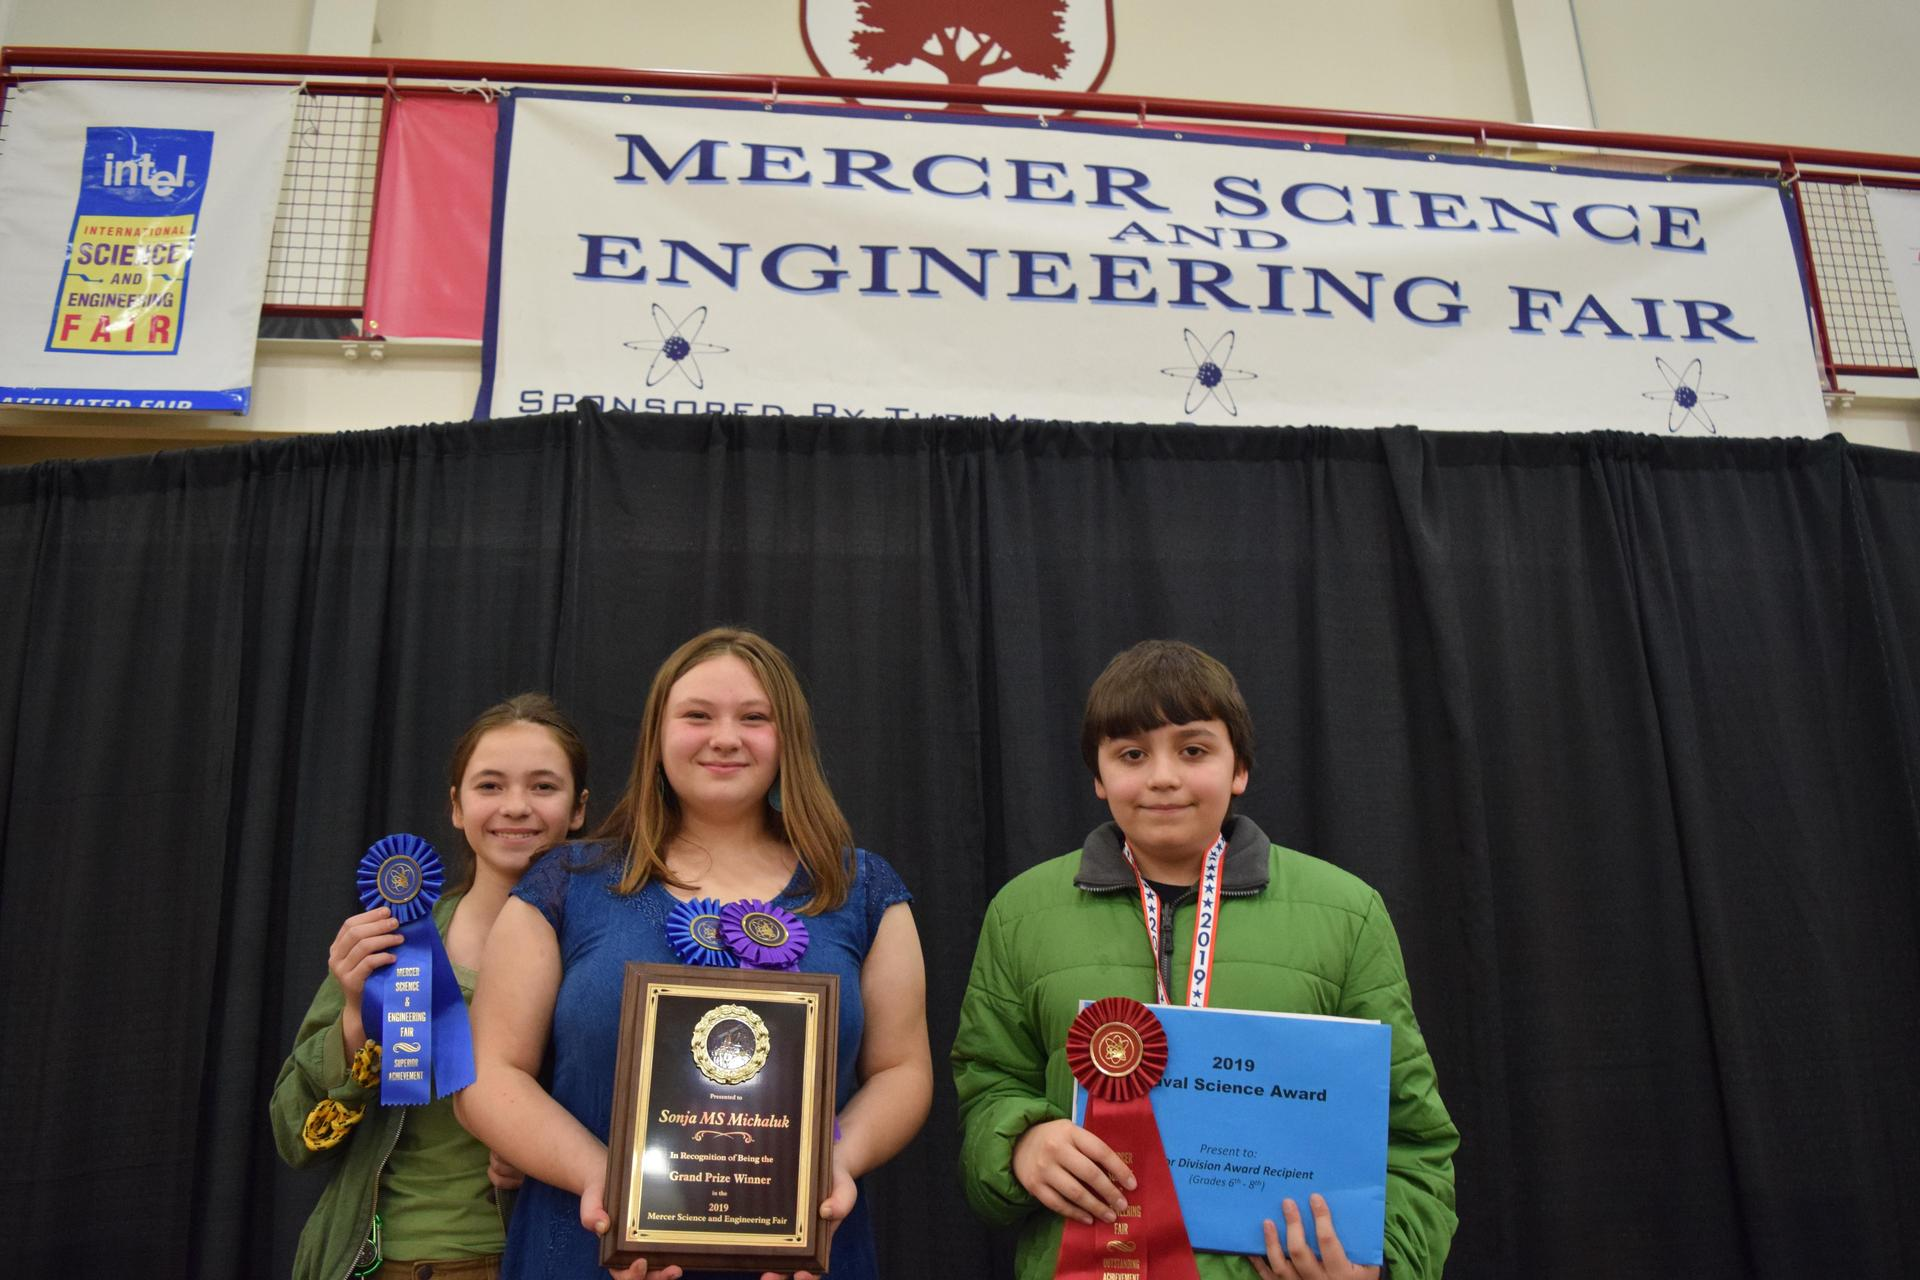 Mercer Science Fair Award Ceremony